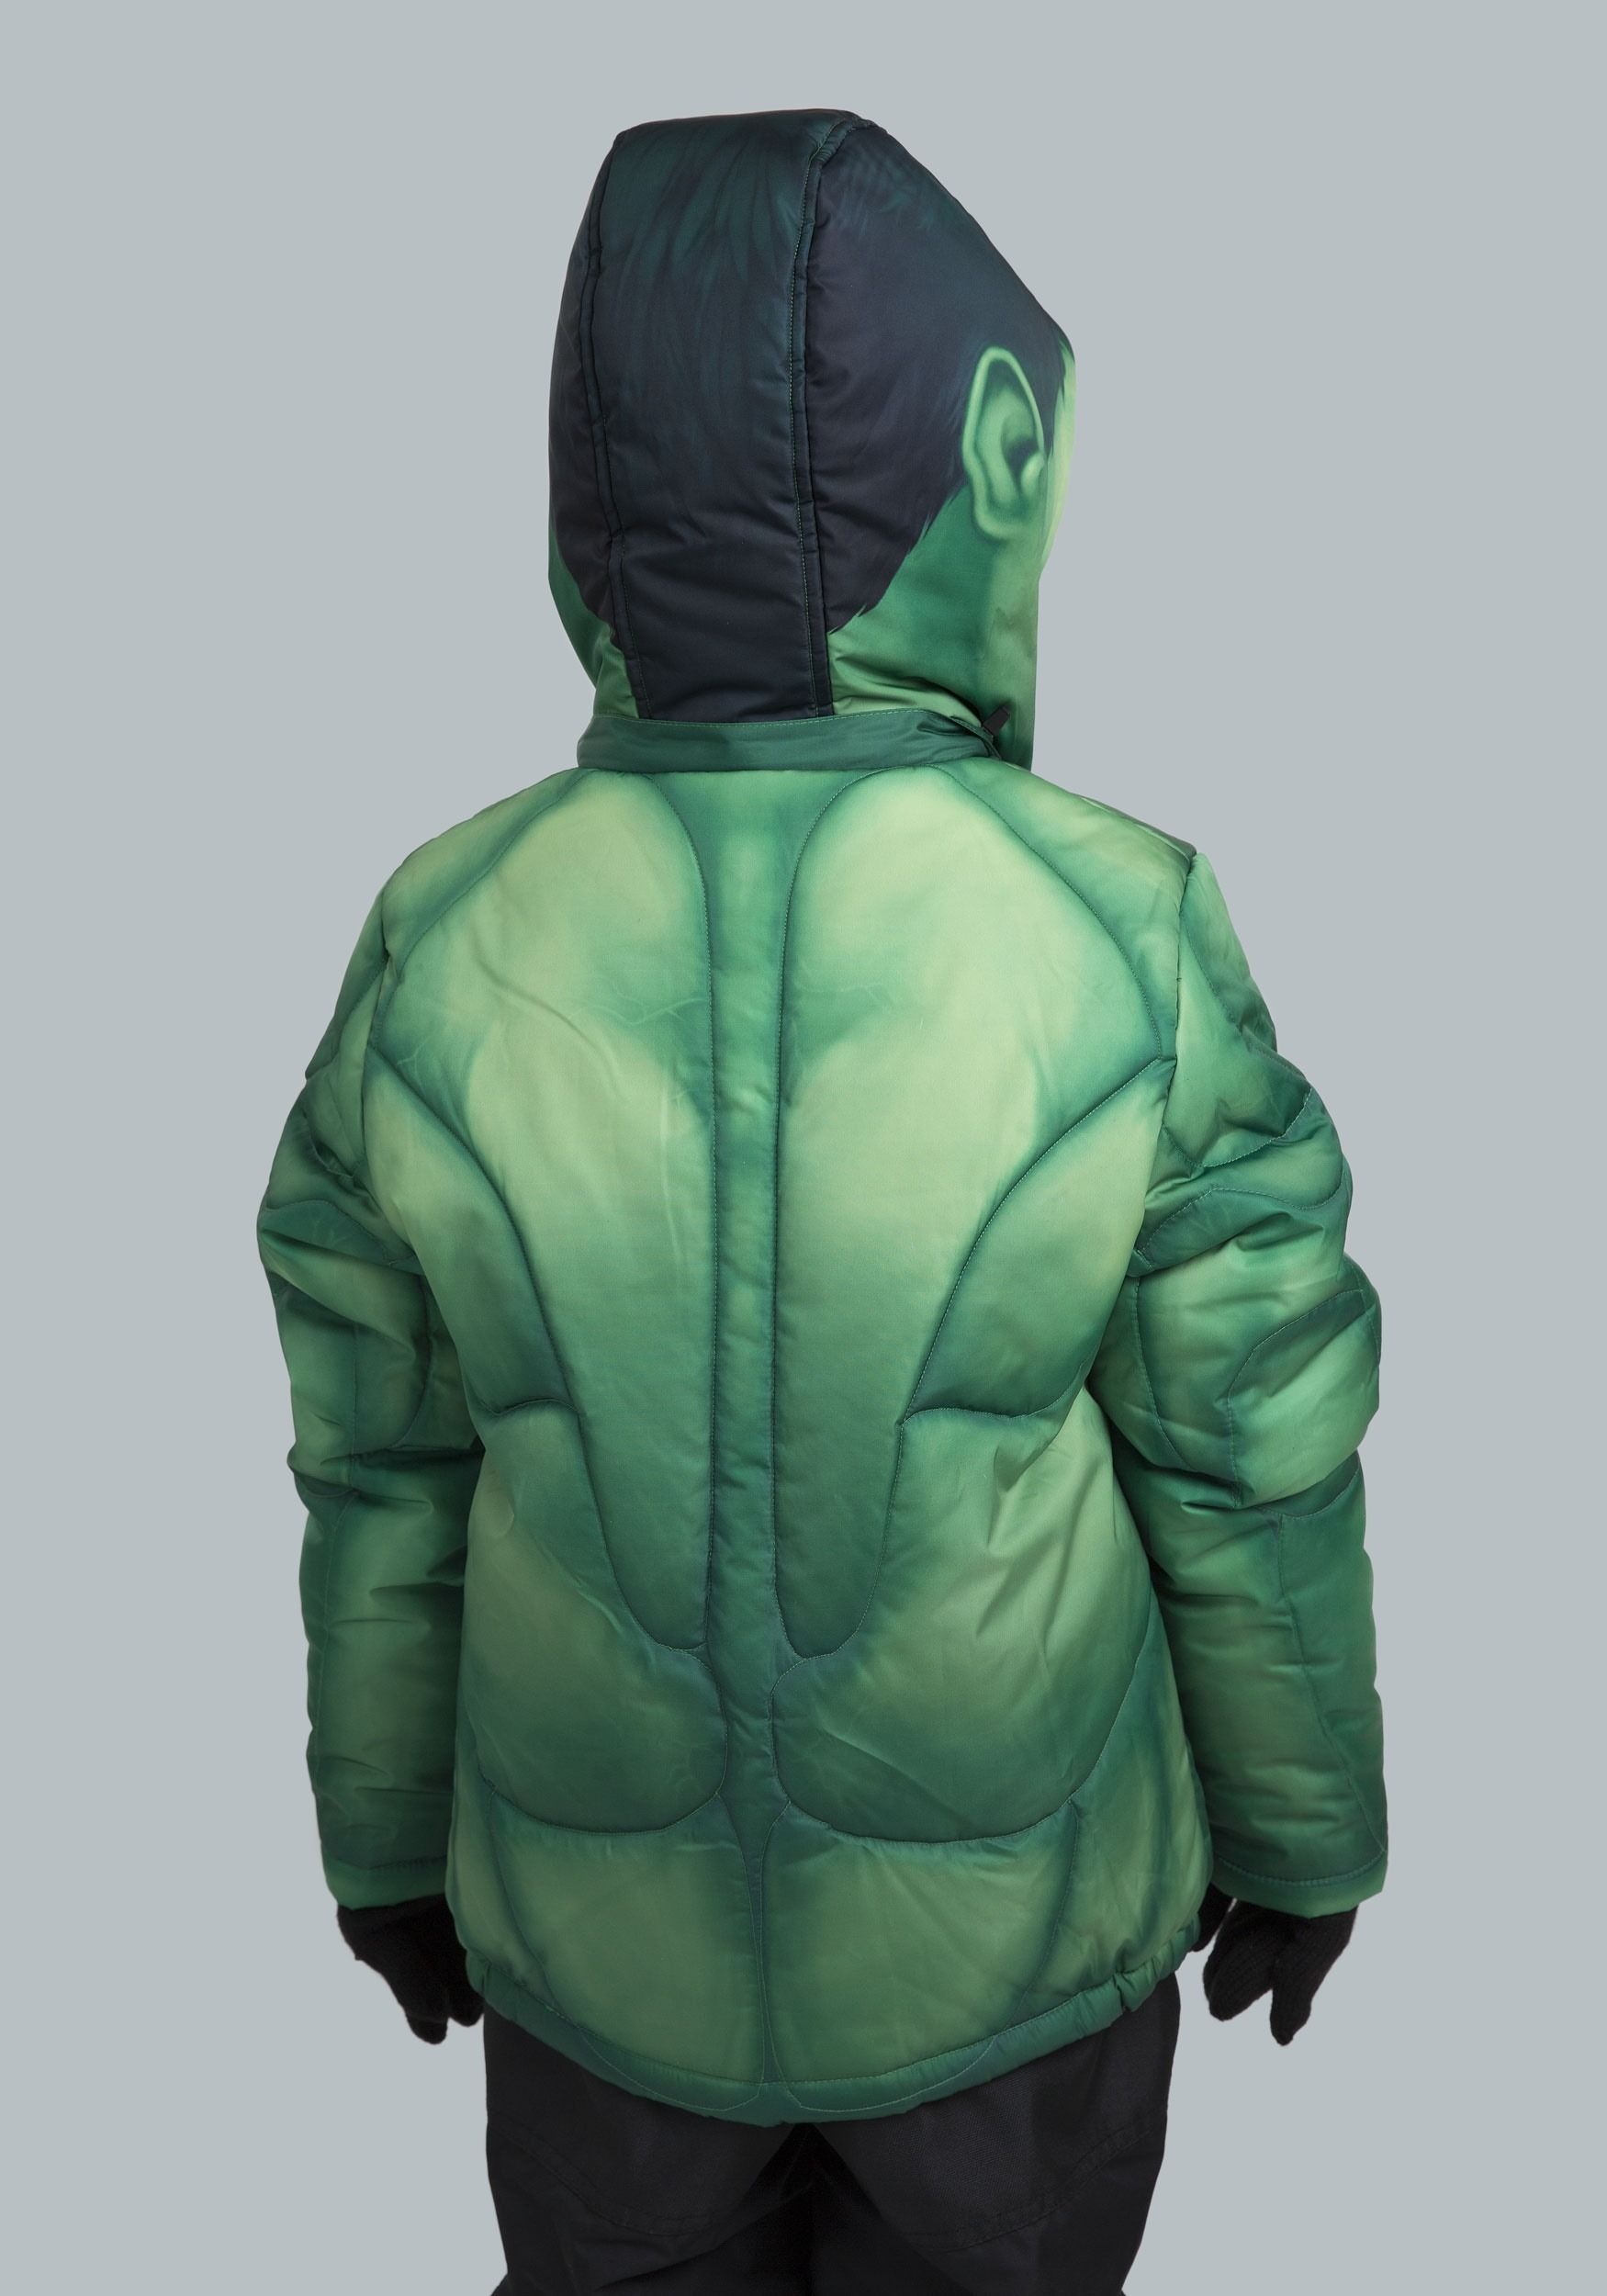 Reviews of TMNT Kids Green Puffer Jacket. We're always looking for constructive feedback, and would appreciate yours! Help out your fellow shoppers and be the first to review this item.